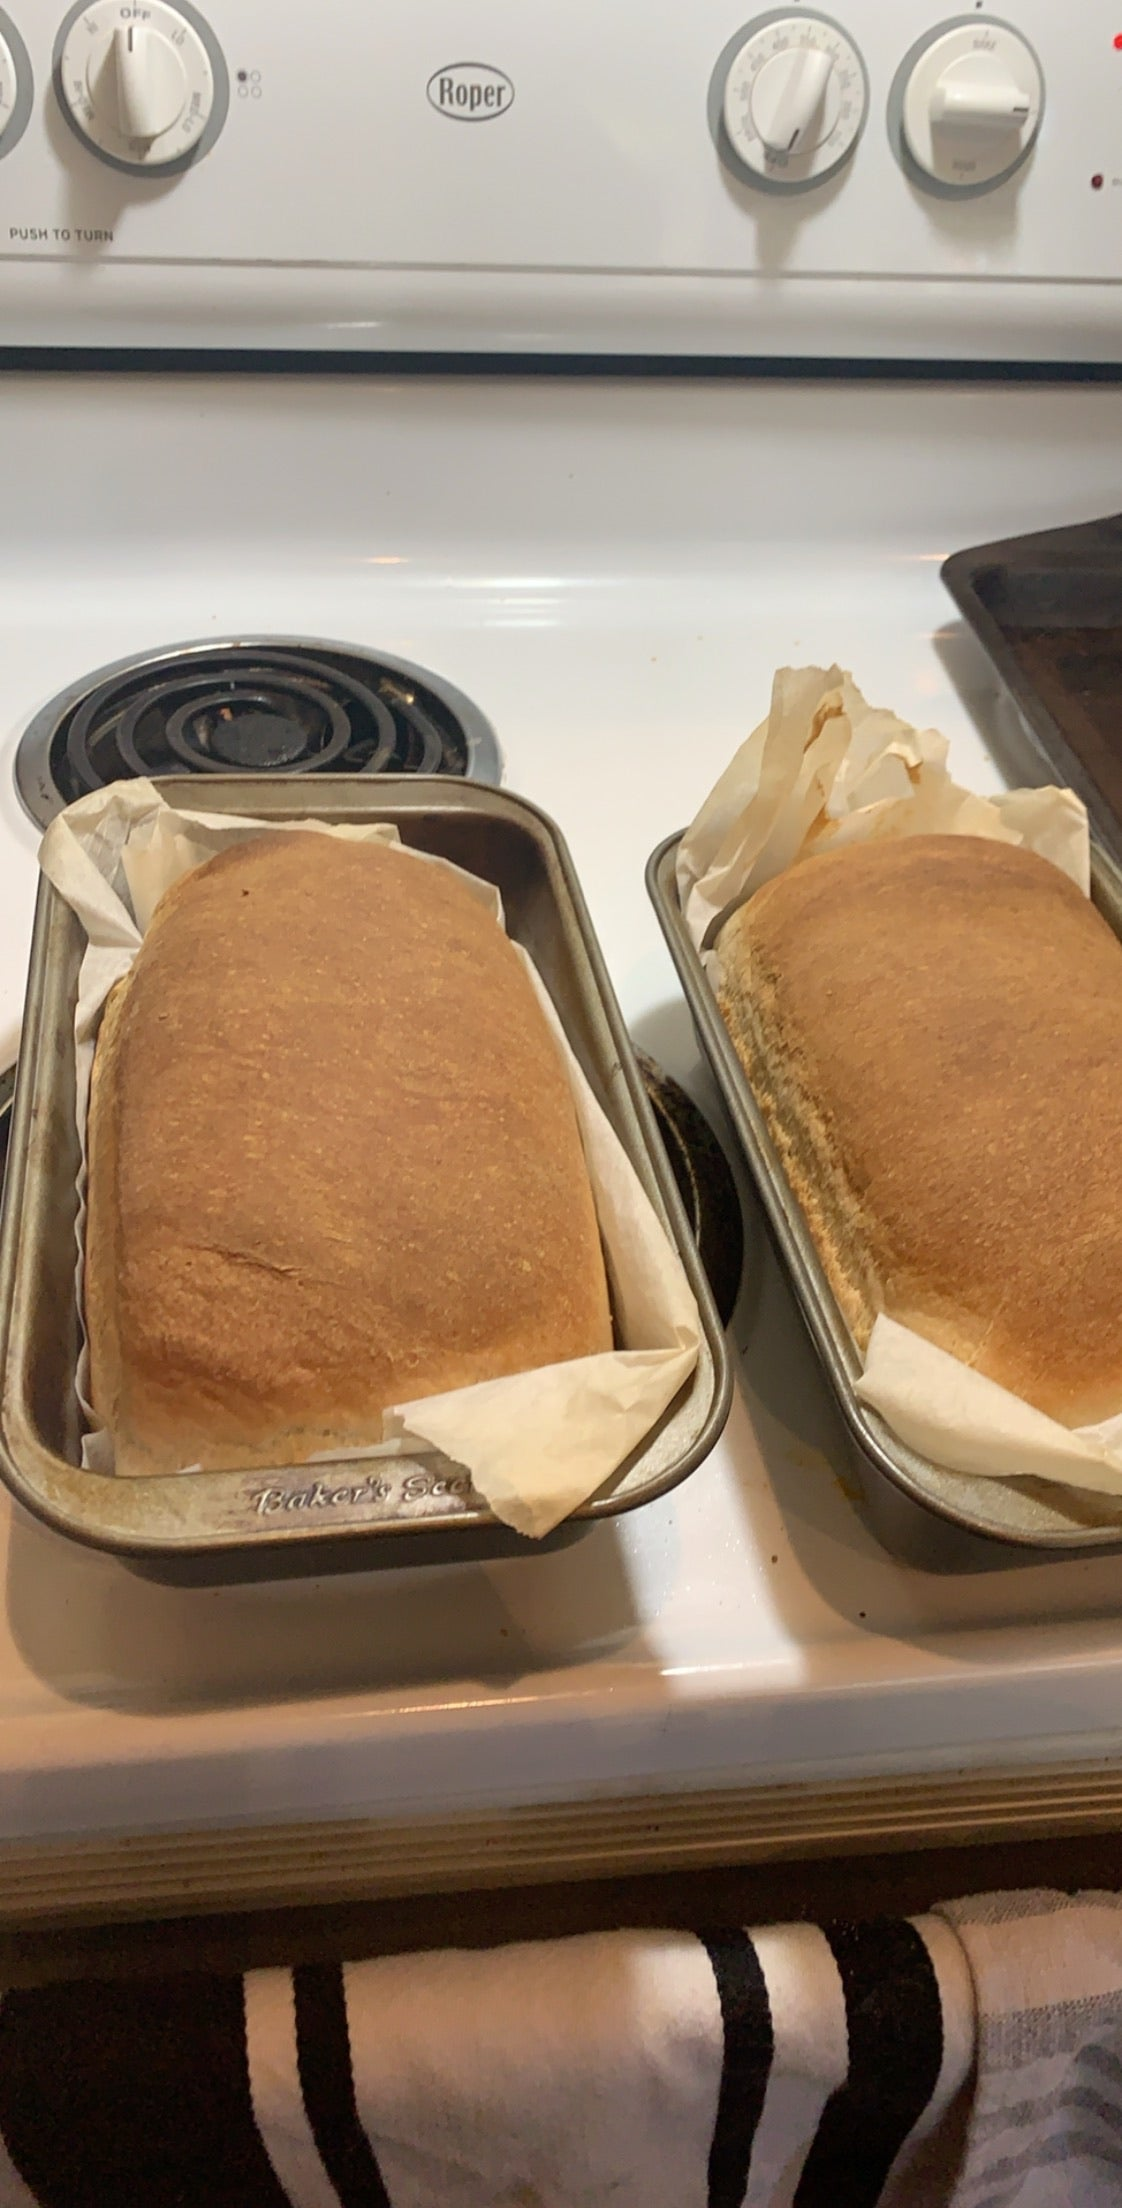 At home bread kit